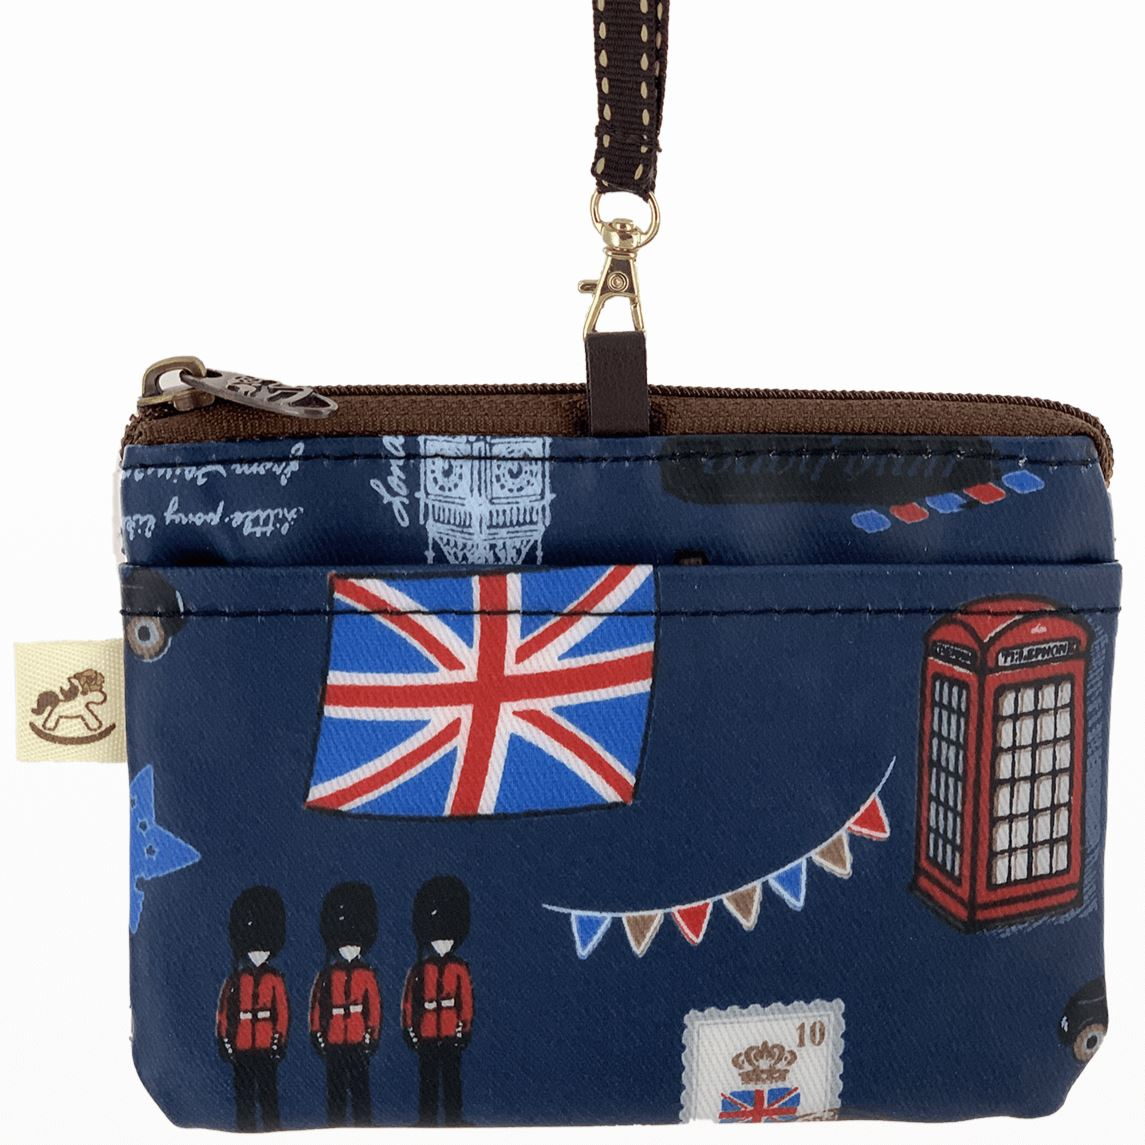 Blue London Card & Coin Purse Tworgis